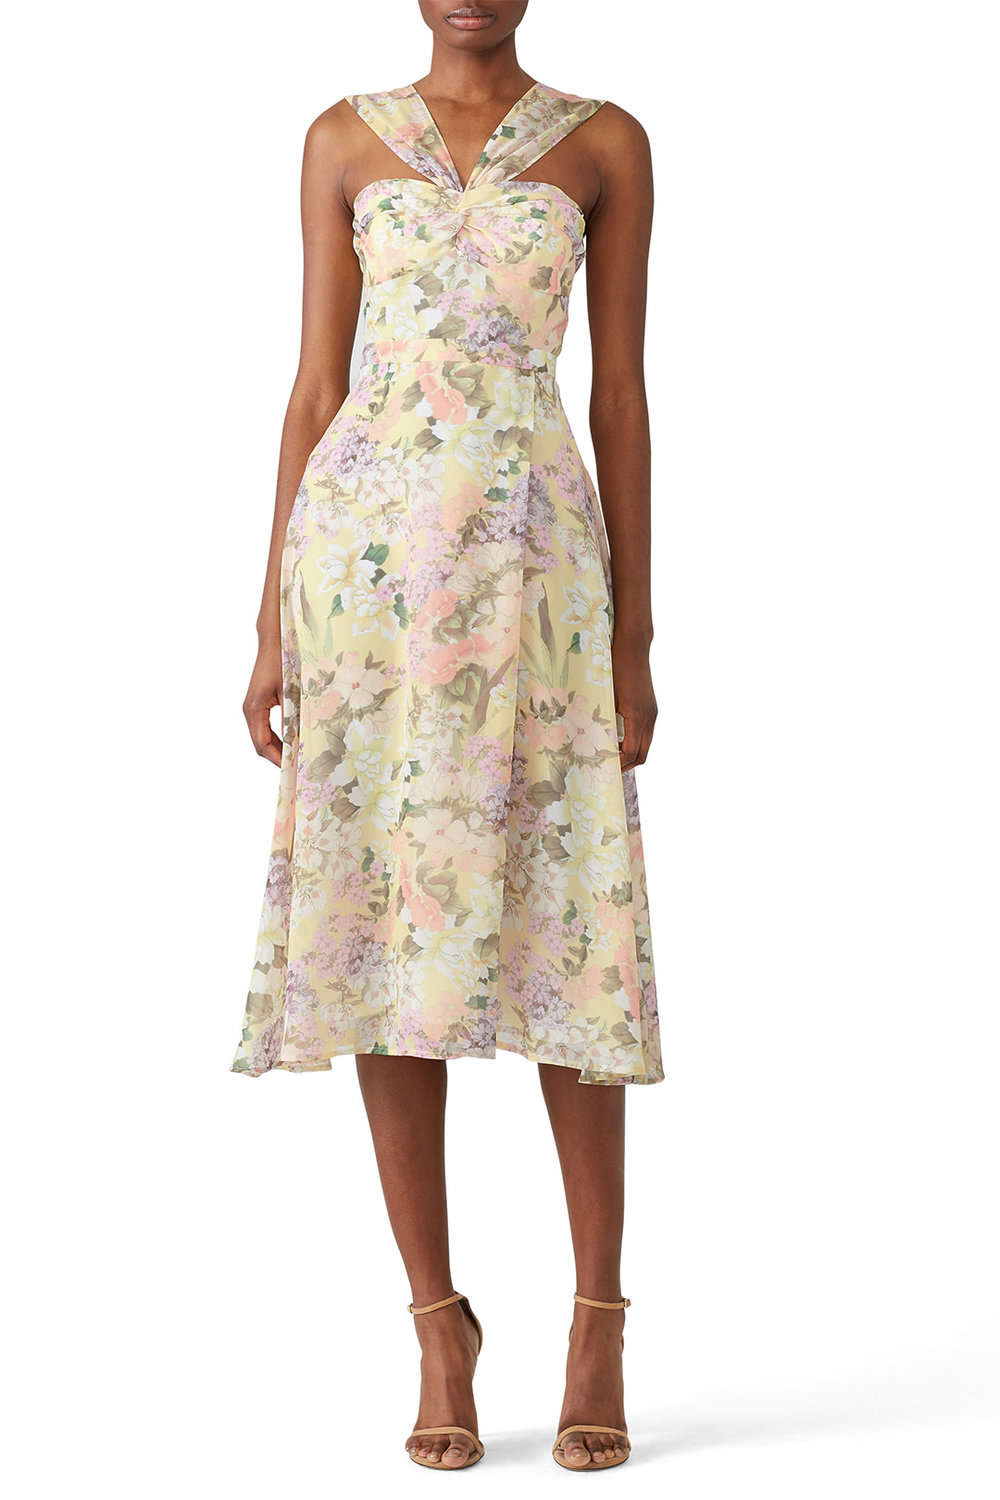 Yumi Kim Floral Ariana Dress